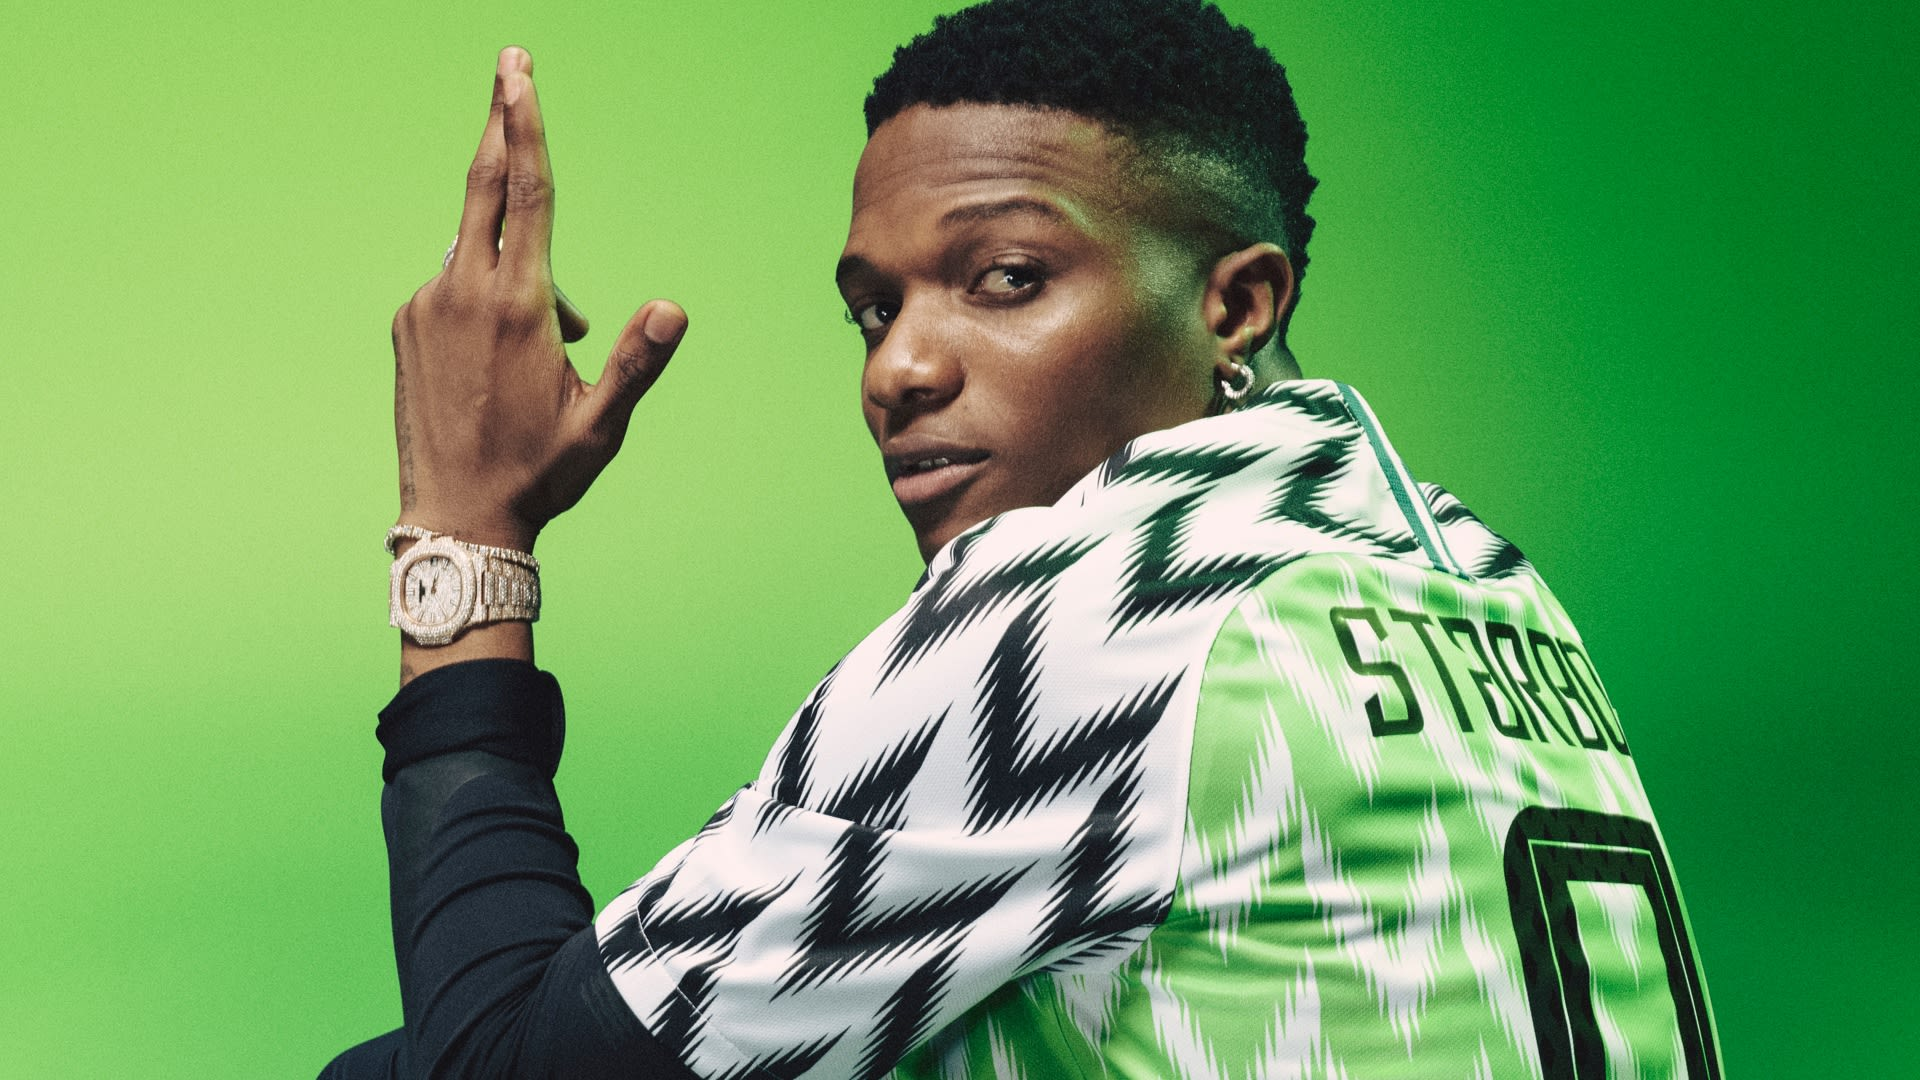 87e005a60147c In Nigeria, when football is on, everything stops. Now with the chance to  prove themselves on the world stage in Russia, they'll try to make the  whole world ...